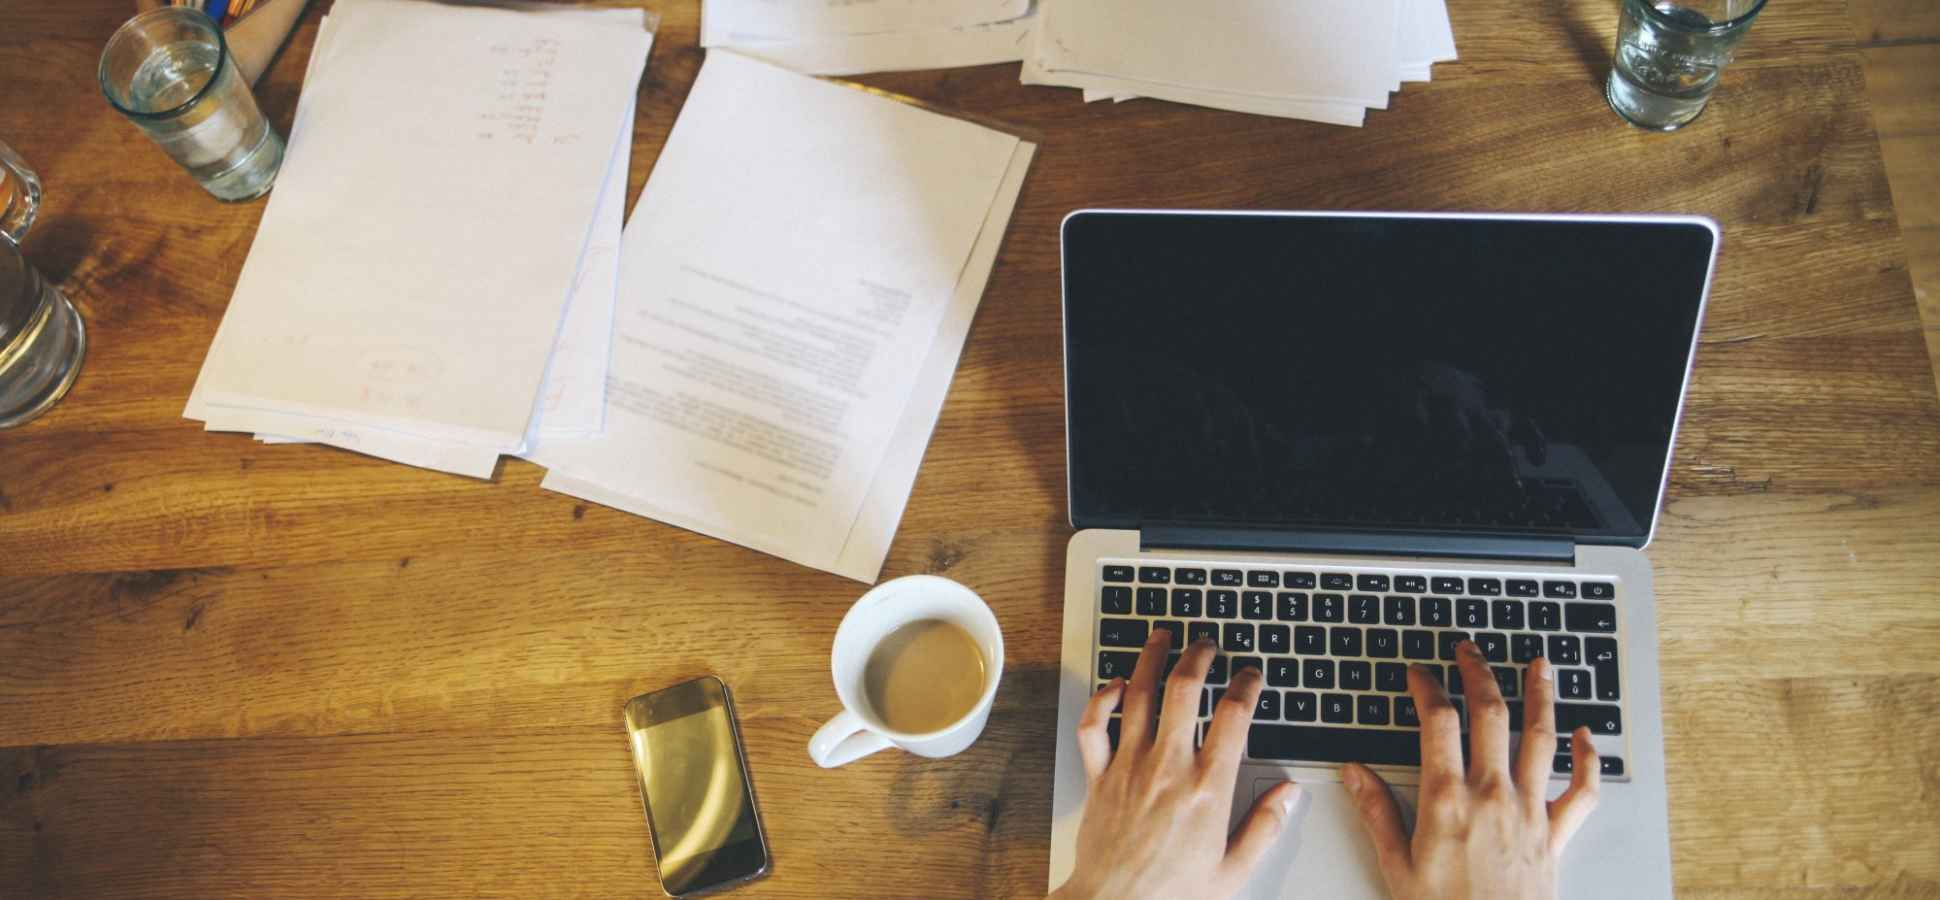 8 Simple Things Every Freelancer Should Do to Be Productive and Profitable